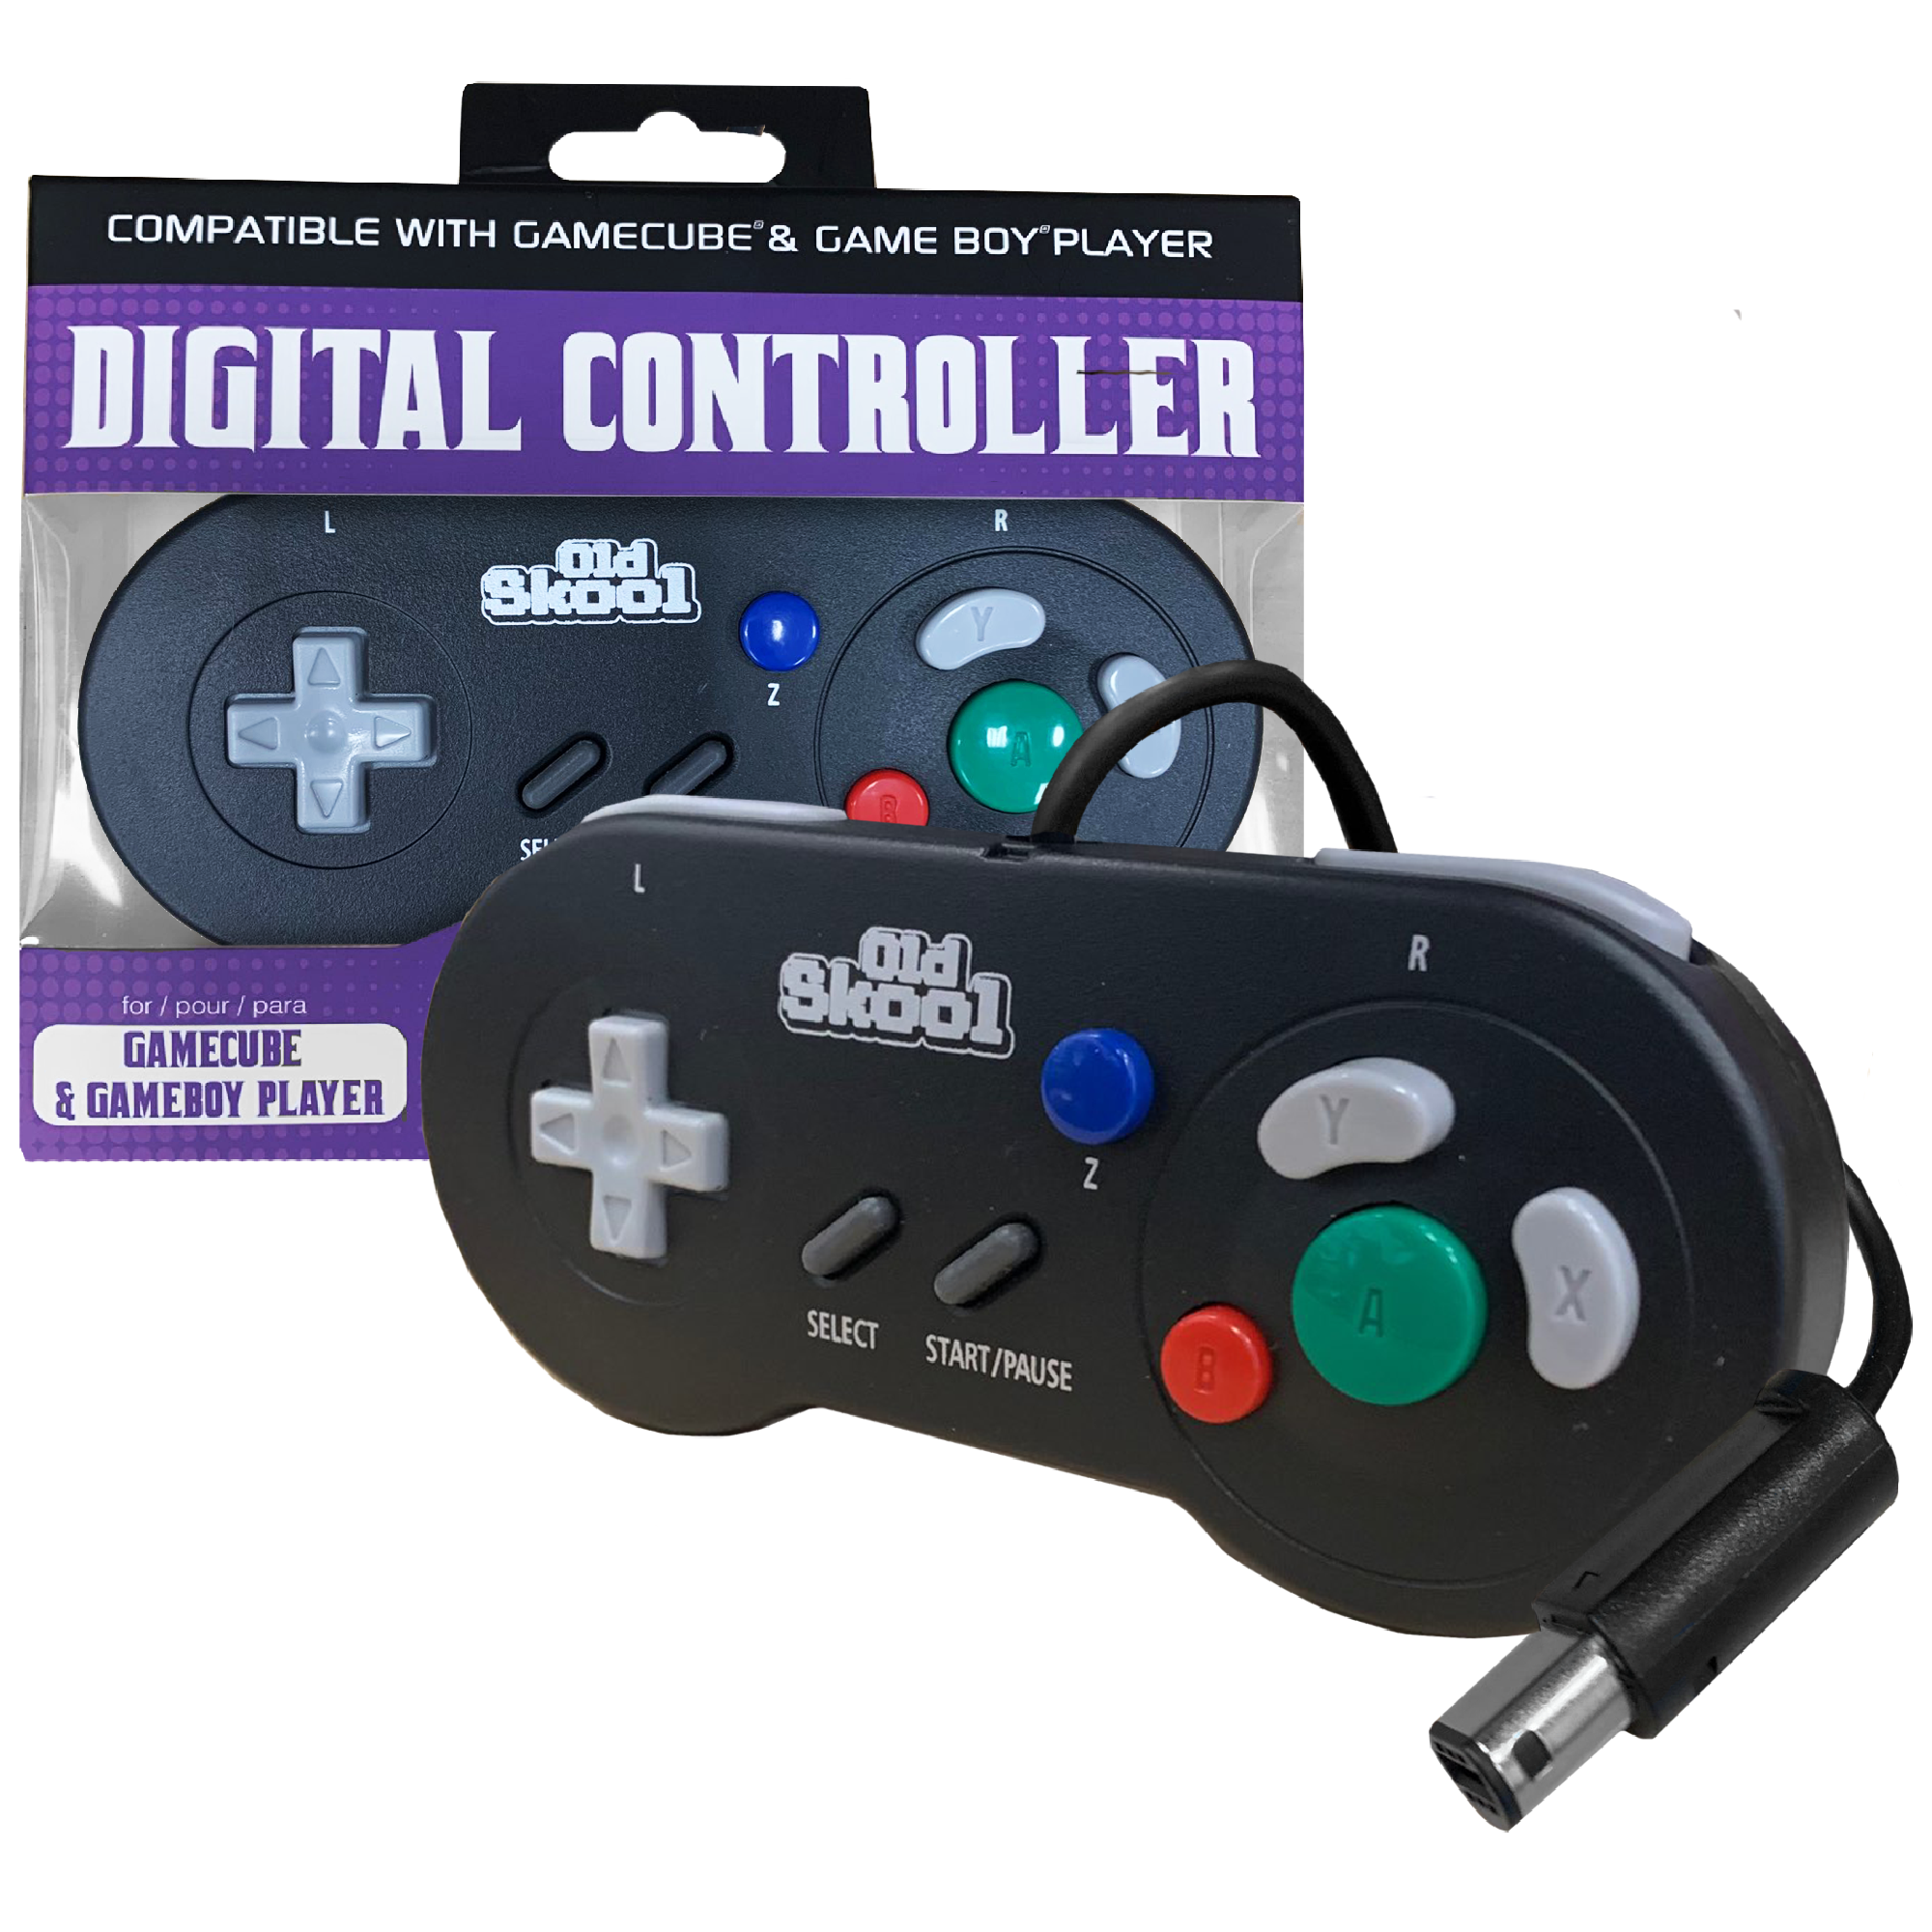 Digital Controller compatible with Gamecube & Gameboy Player